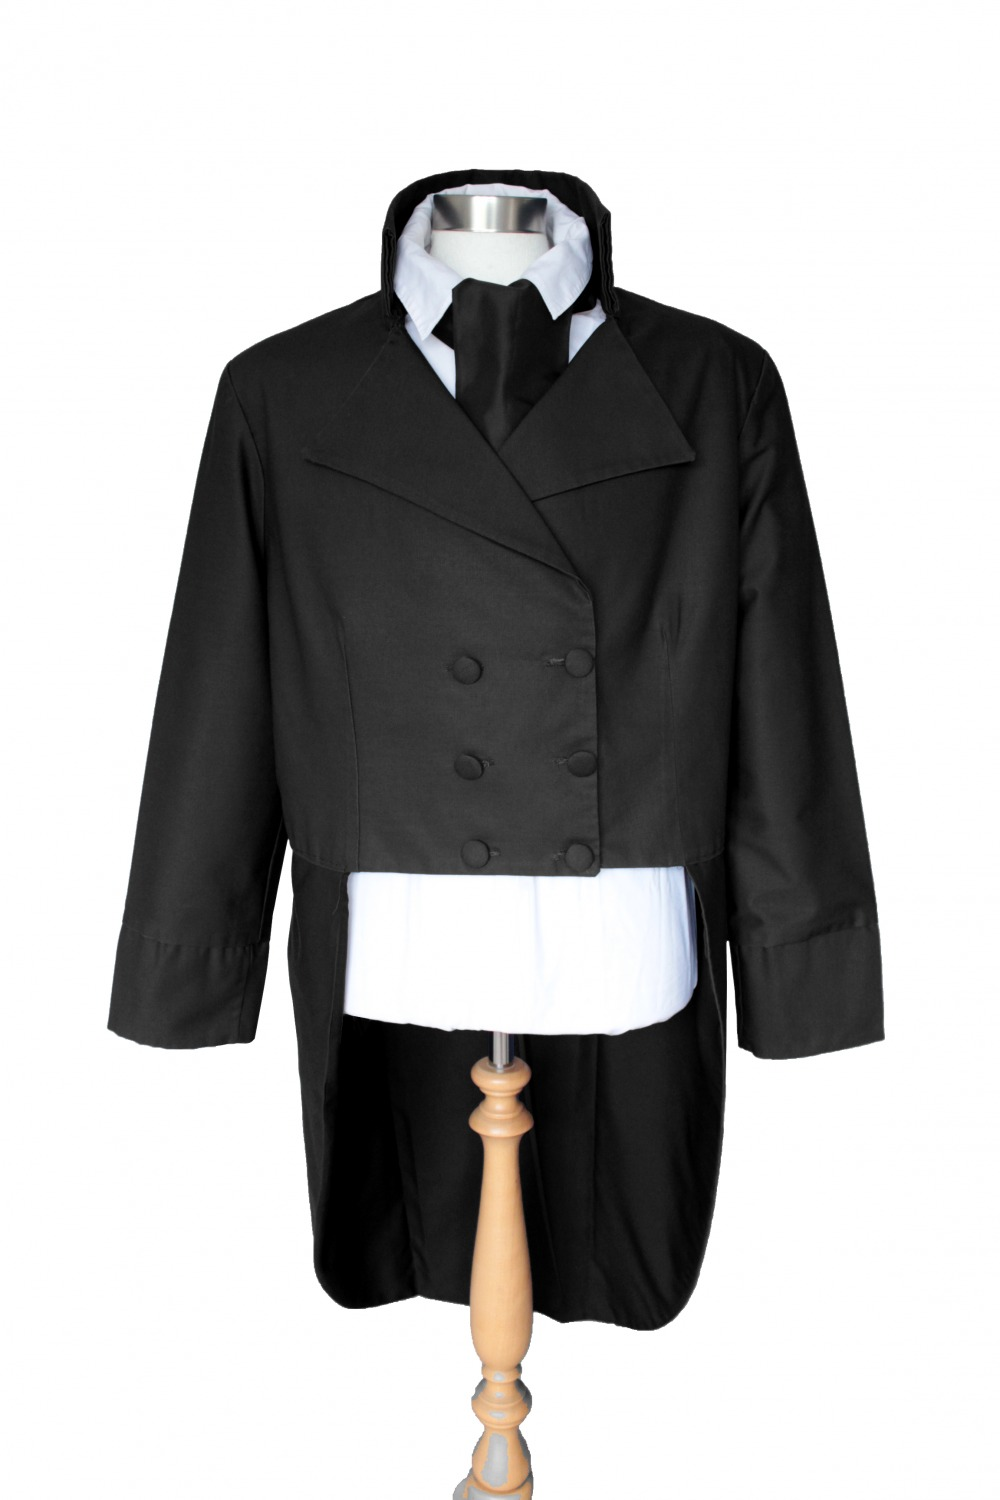 For Sale Made To Order Men's Regency Mr. Darcy Victorian Tailcoats Sizes XS, S, M, L , XL Image